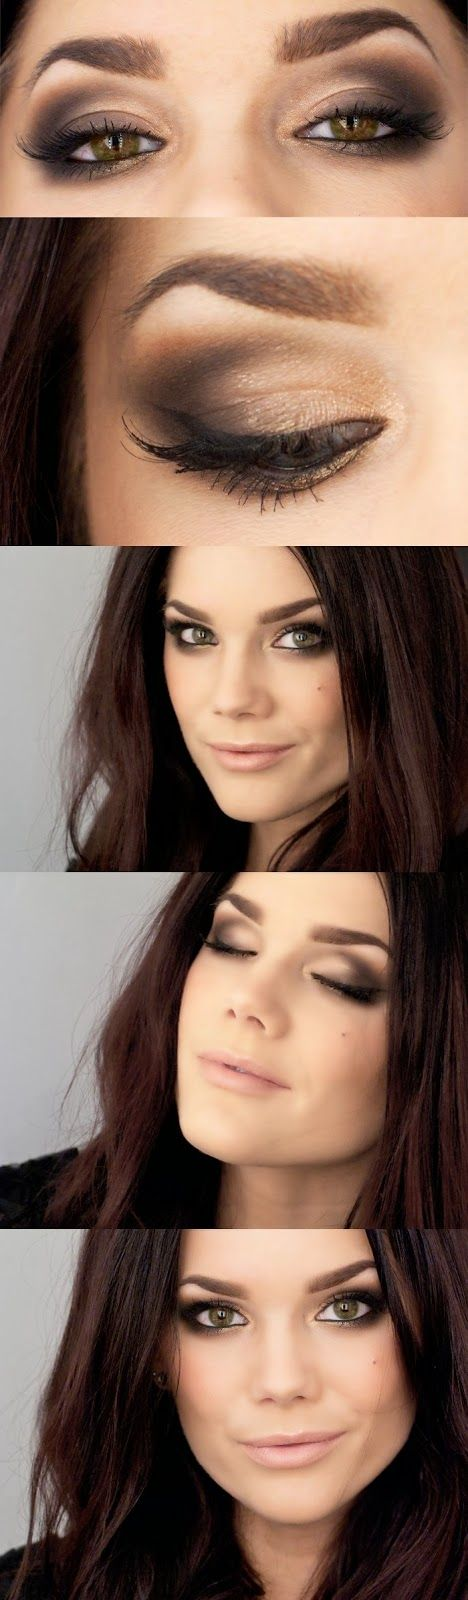 Today's Look Inspired by Mila Kunis #Linda Hallberg